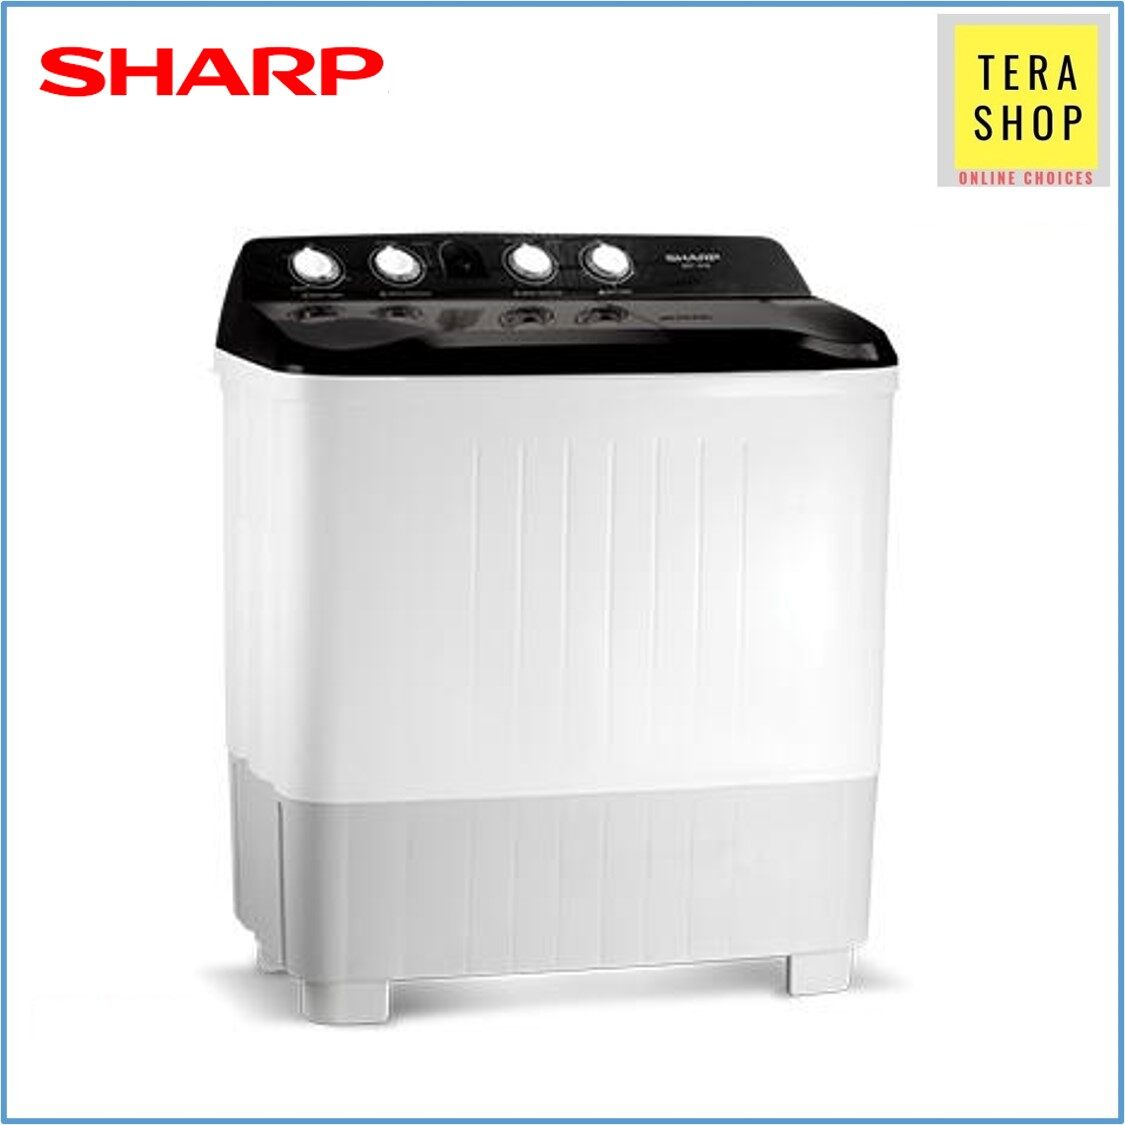 Sharp Semi-Auto EST1216 Washing Machine 12kg